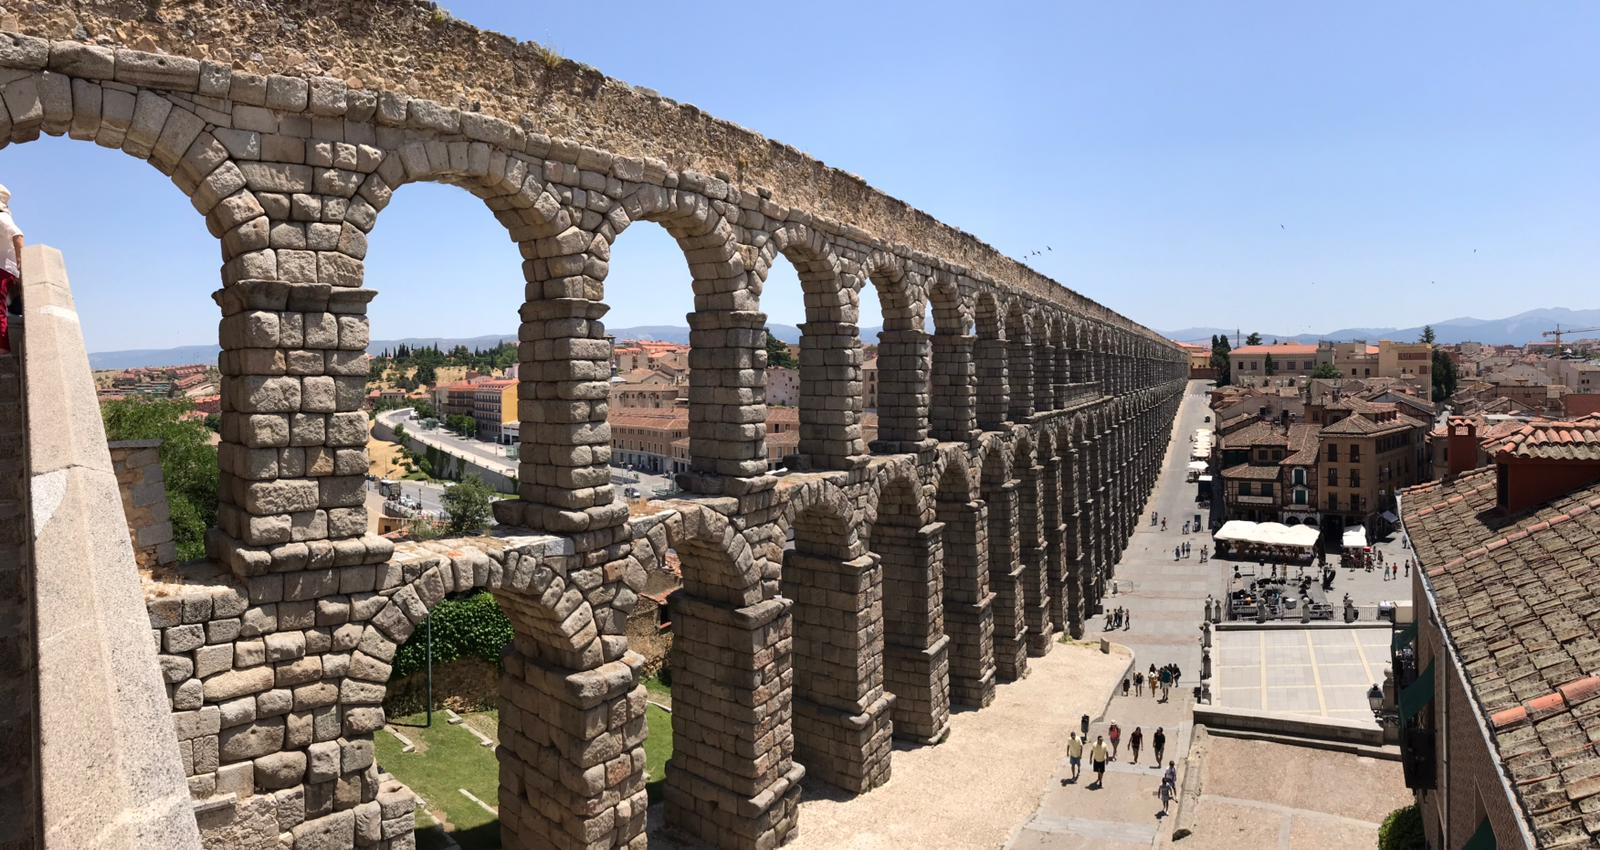 Pictured: Aqueduct of Segovia, which was built during the second half of the 1st century A.D., this is an hour's drive away from the center of Madrid, Spain.